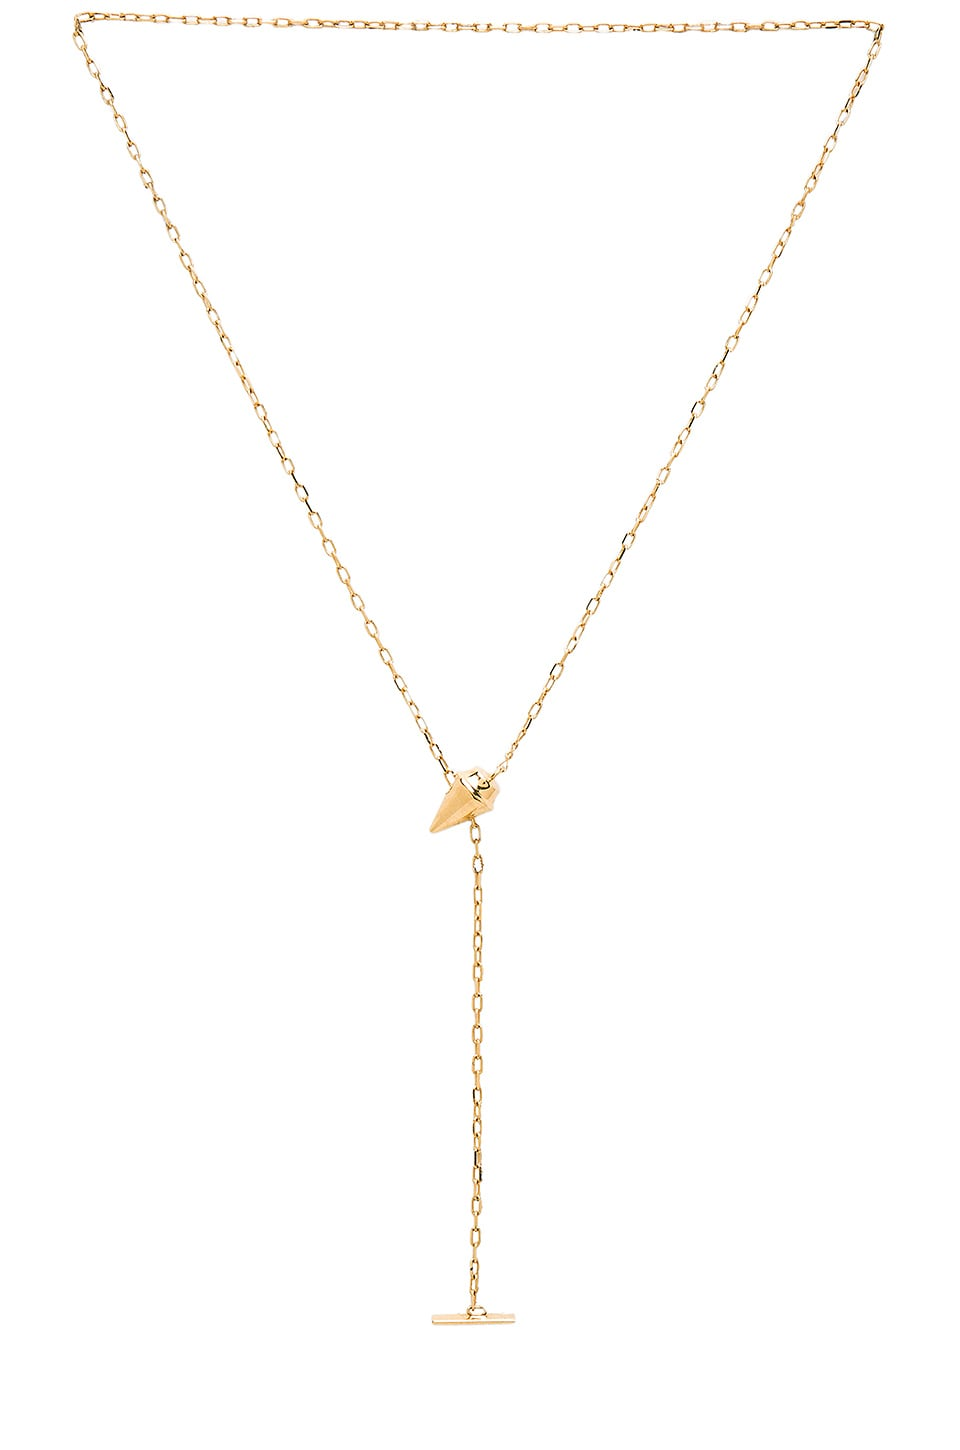 Vita Fede Delicate Titan Necklace in Gold